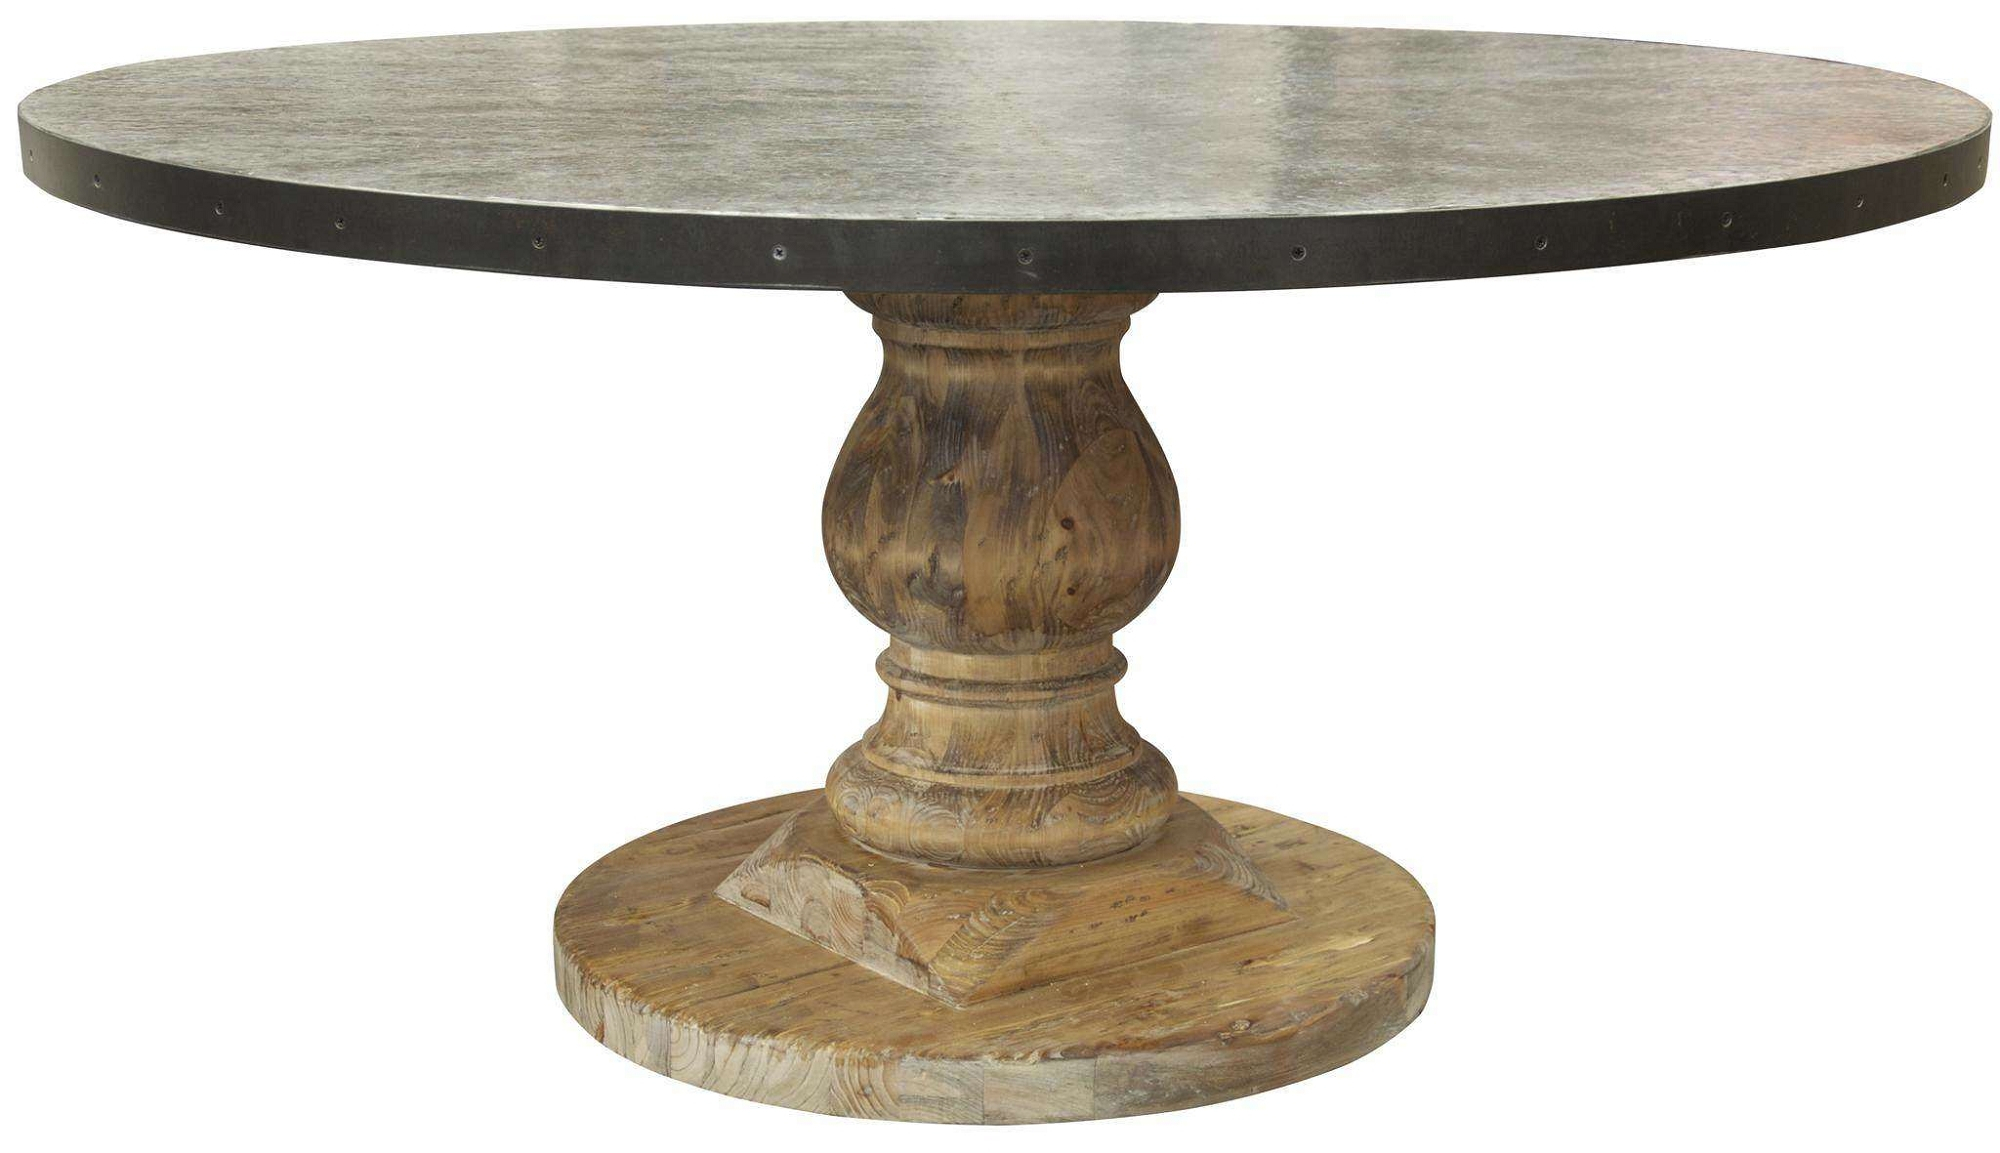 Dining Room: Round Pedestal Dining Table Beautifully Made With Most Popular Benchwright Round Pedestal Dining Tables (View 10 of 25)